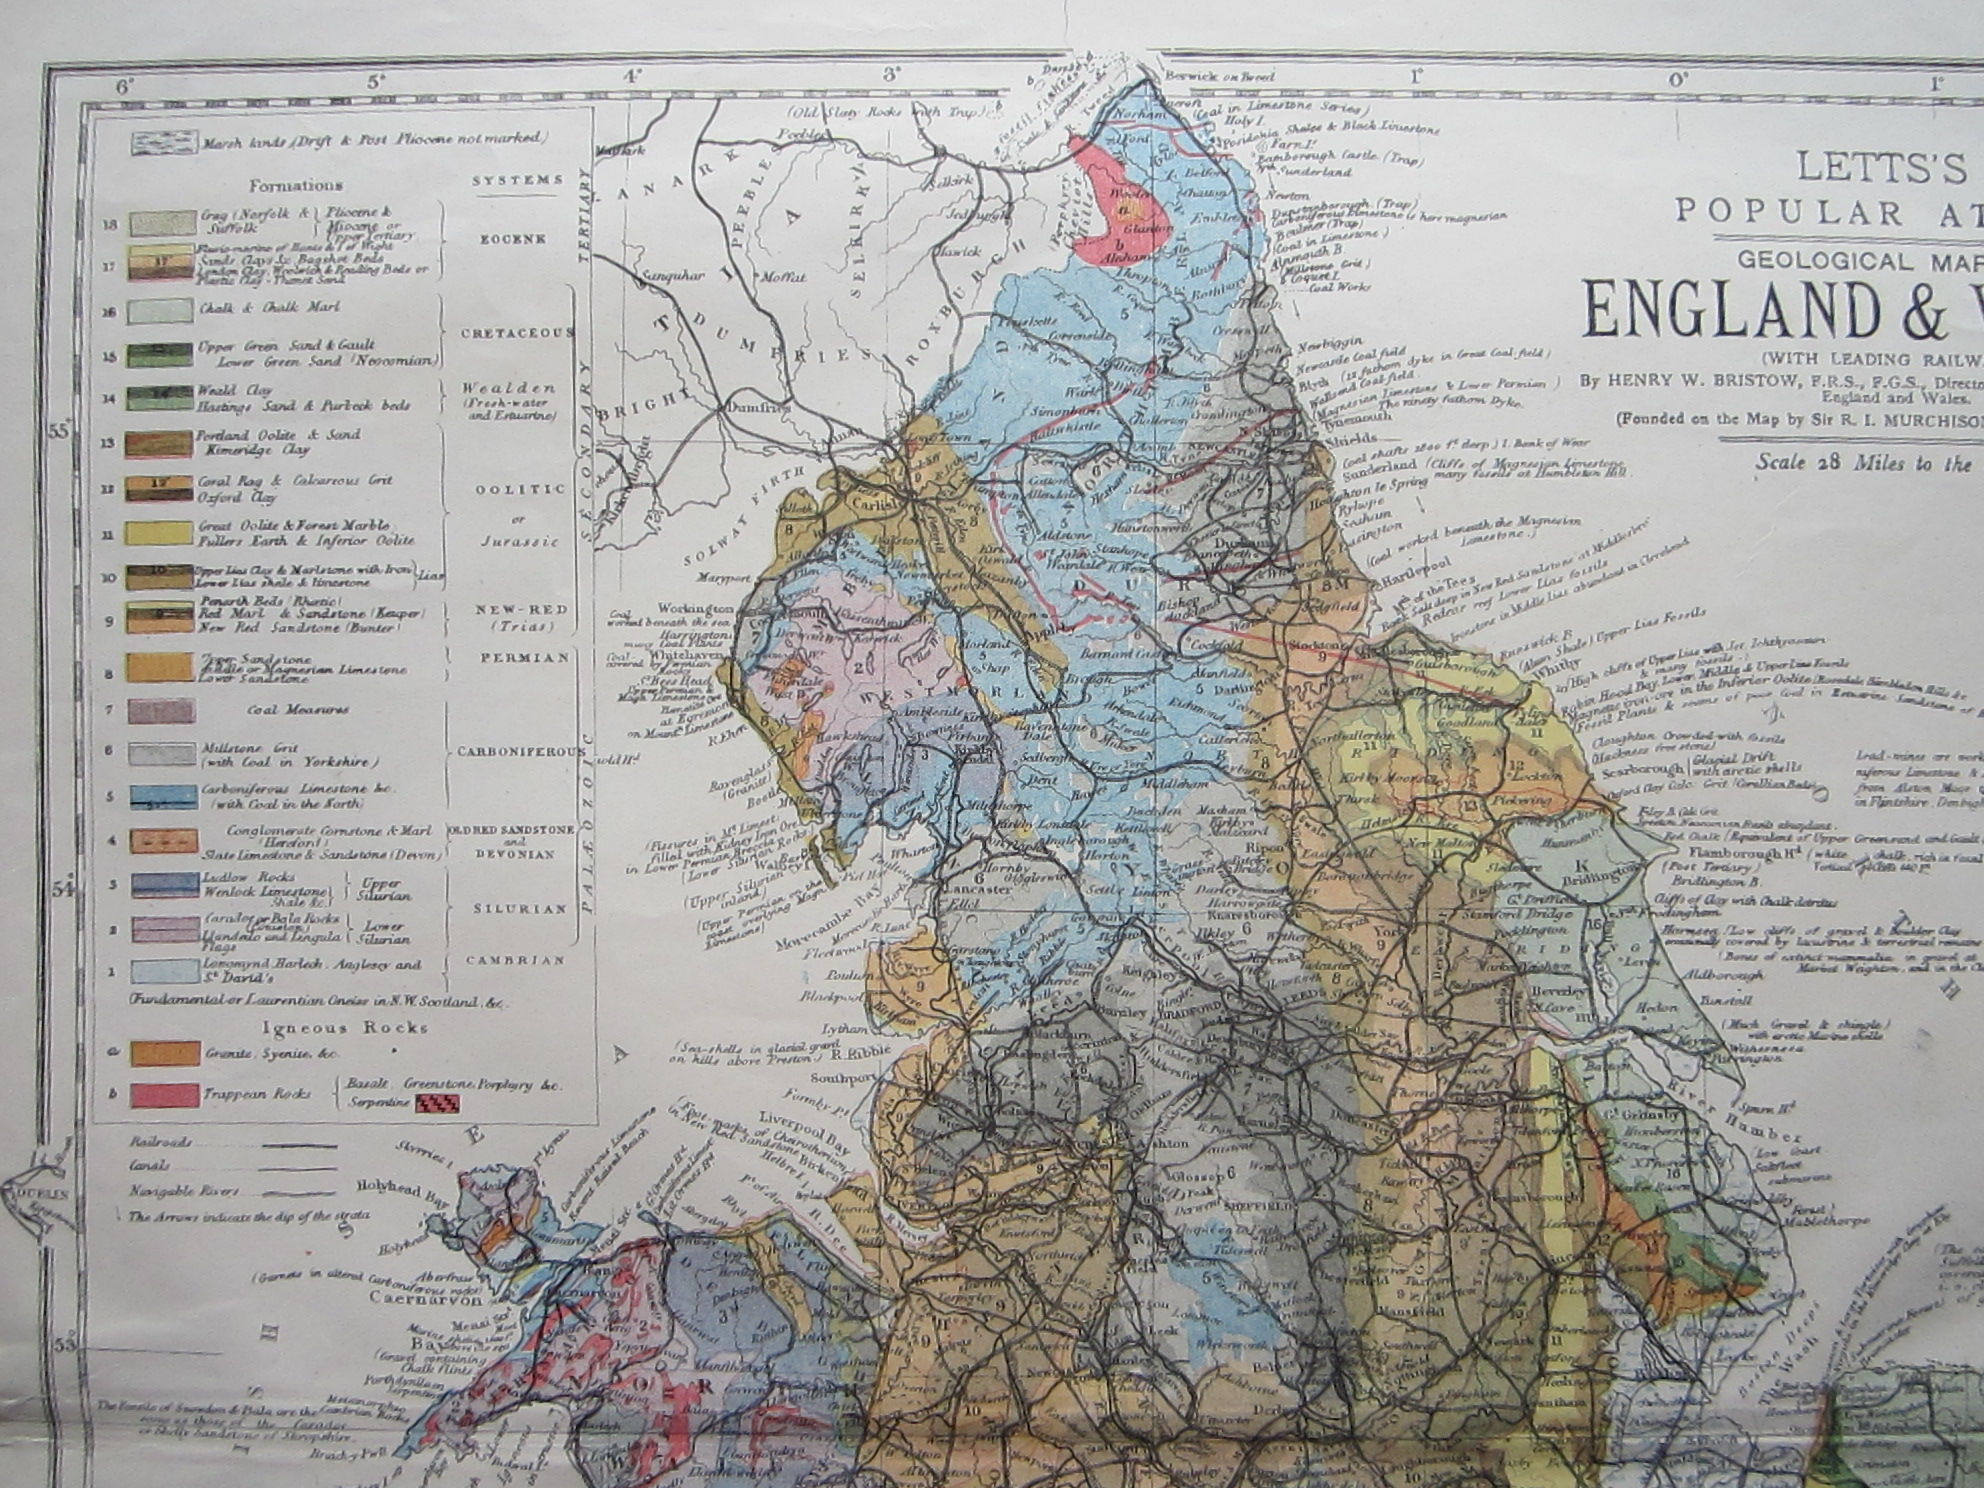 Geological Map of England & Wales (photo 3)